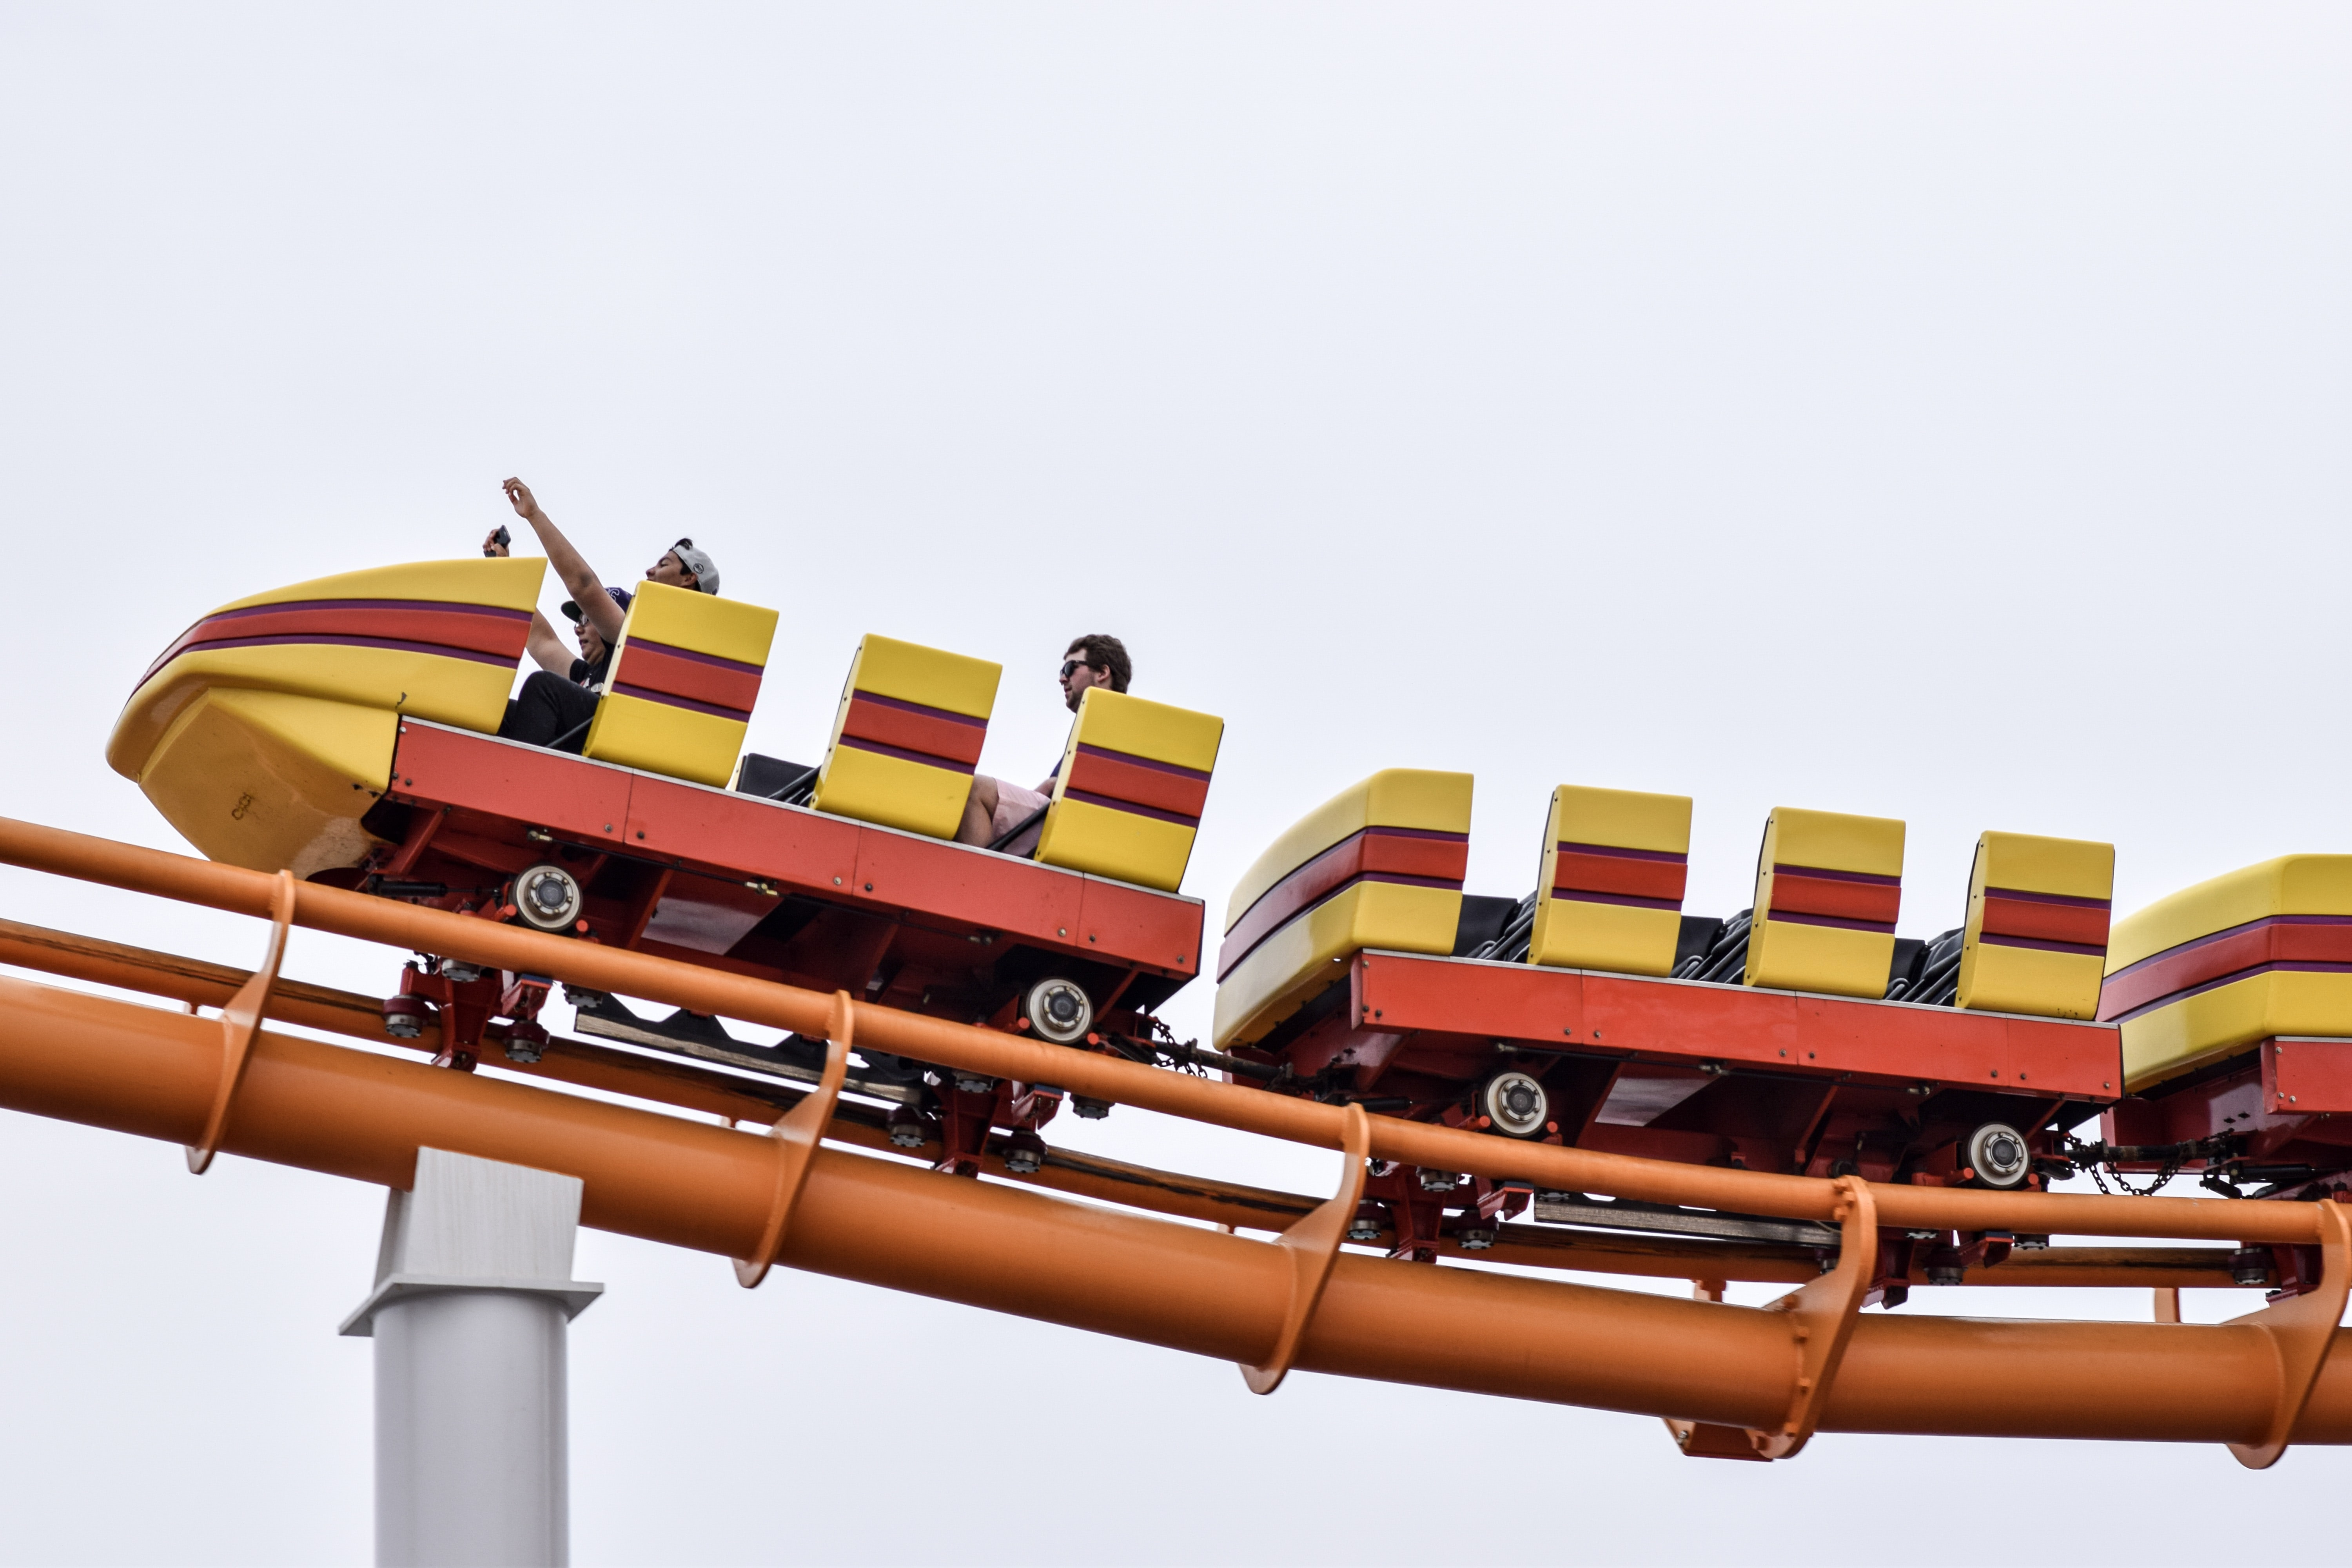 people riding on rollercoaster